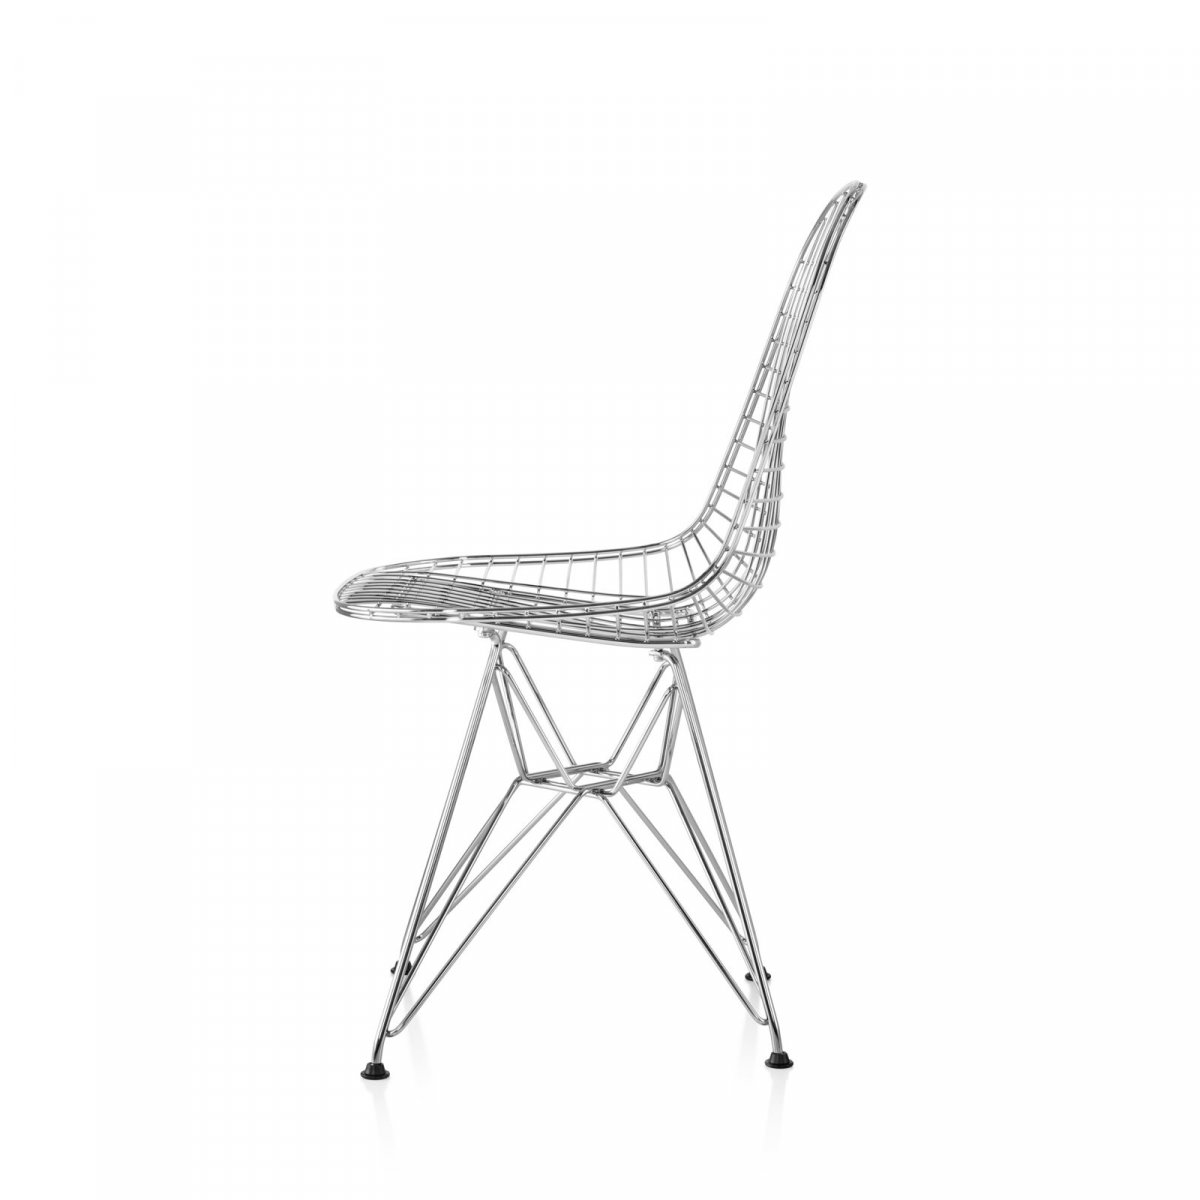 Eames Wire Chair, chrome, side view.